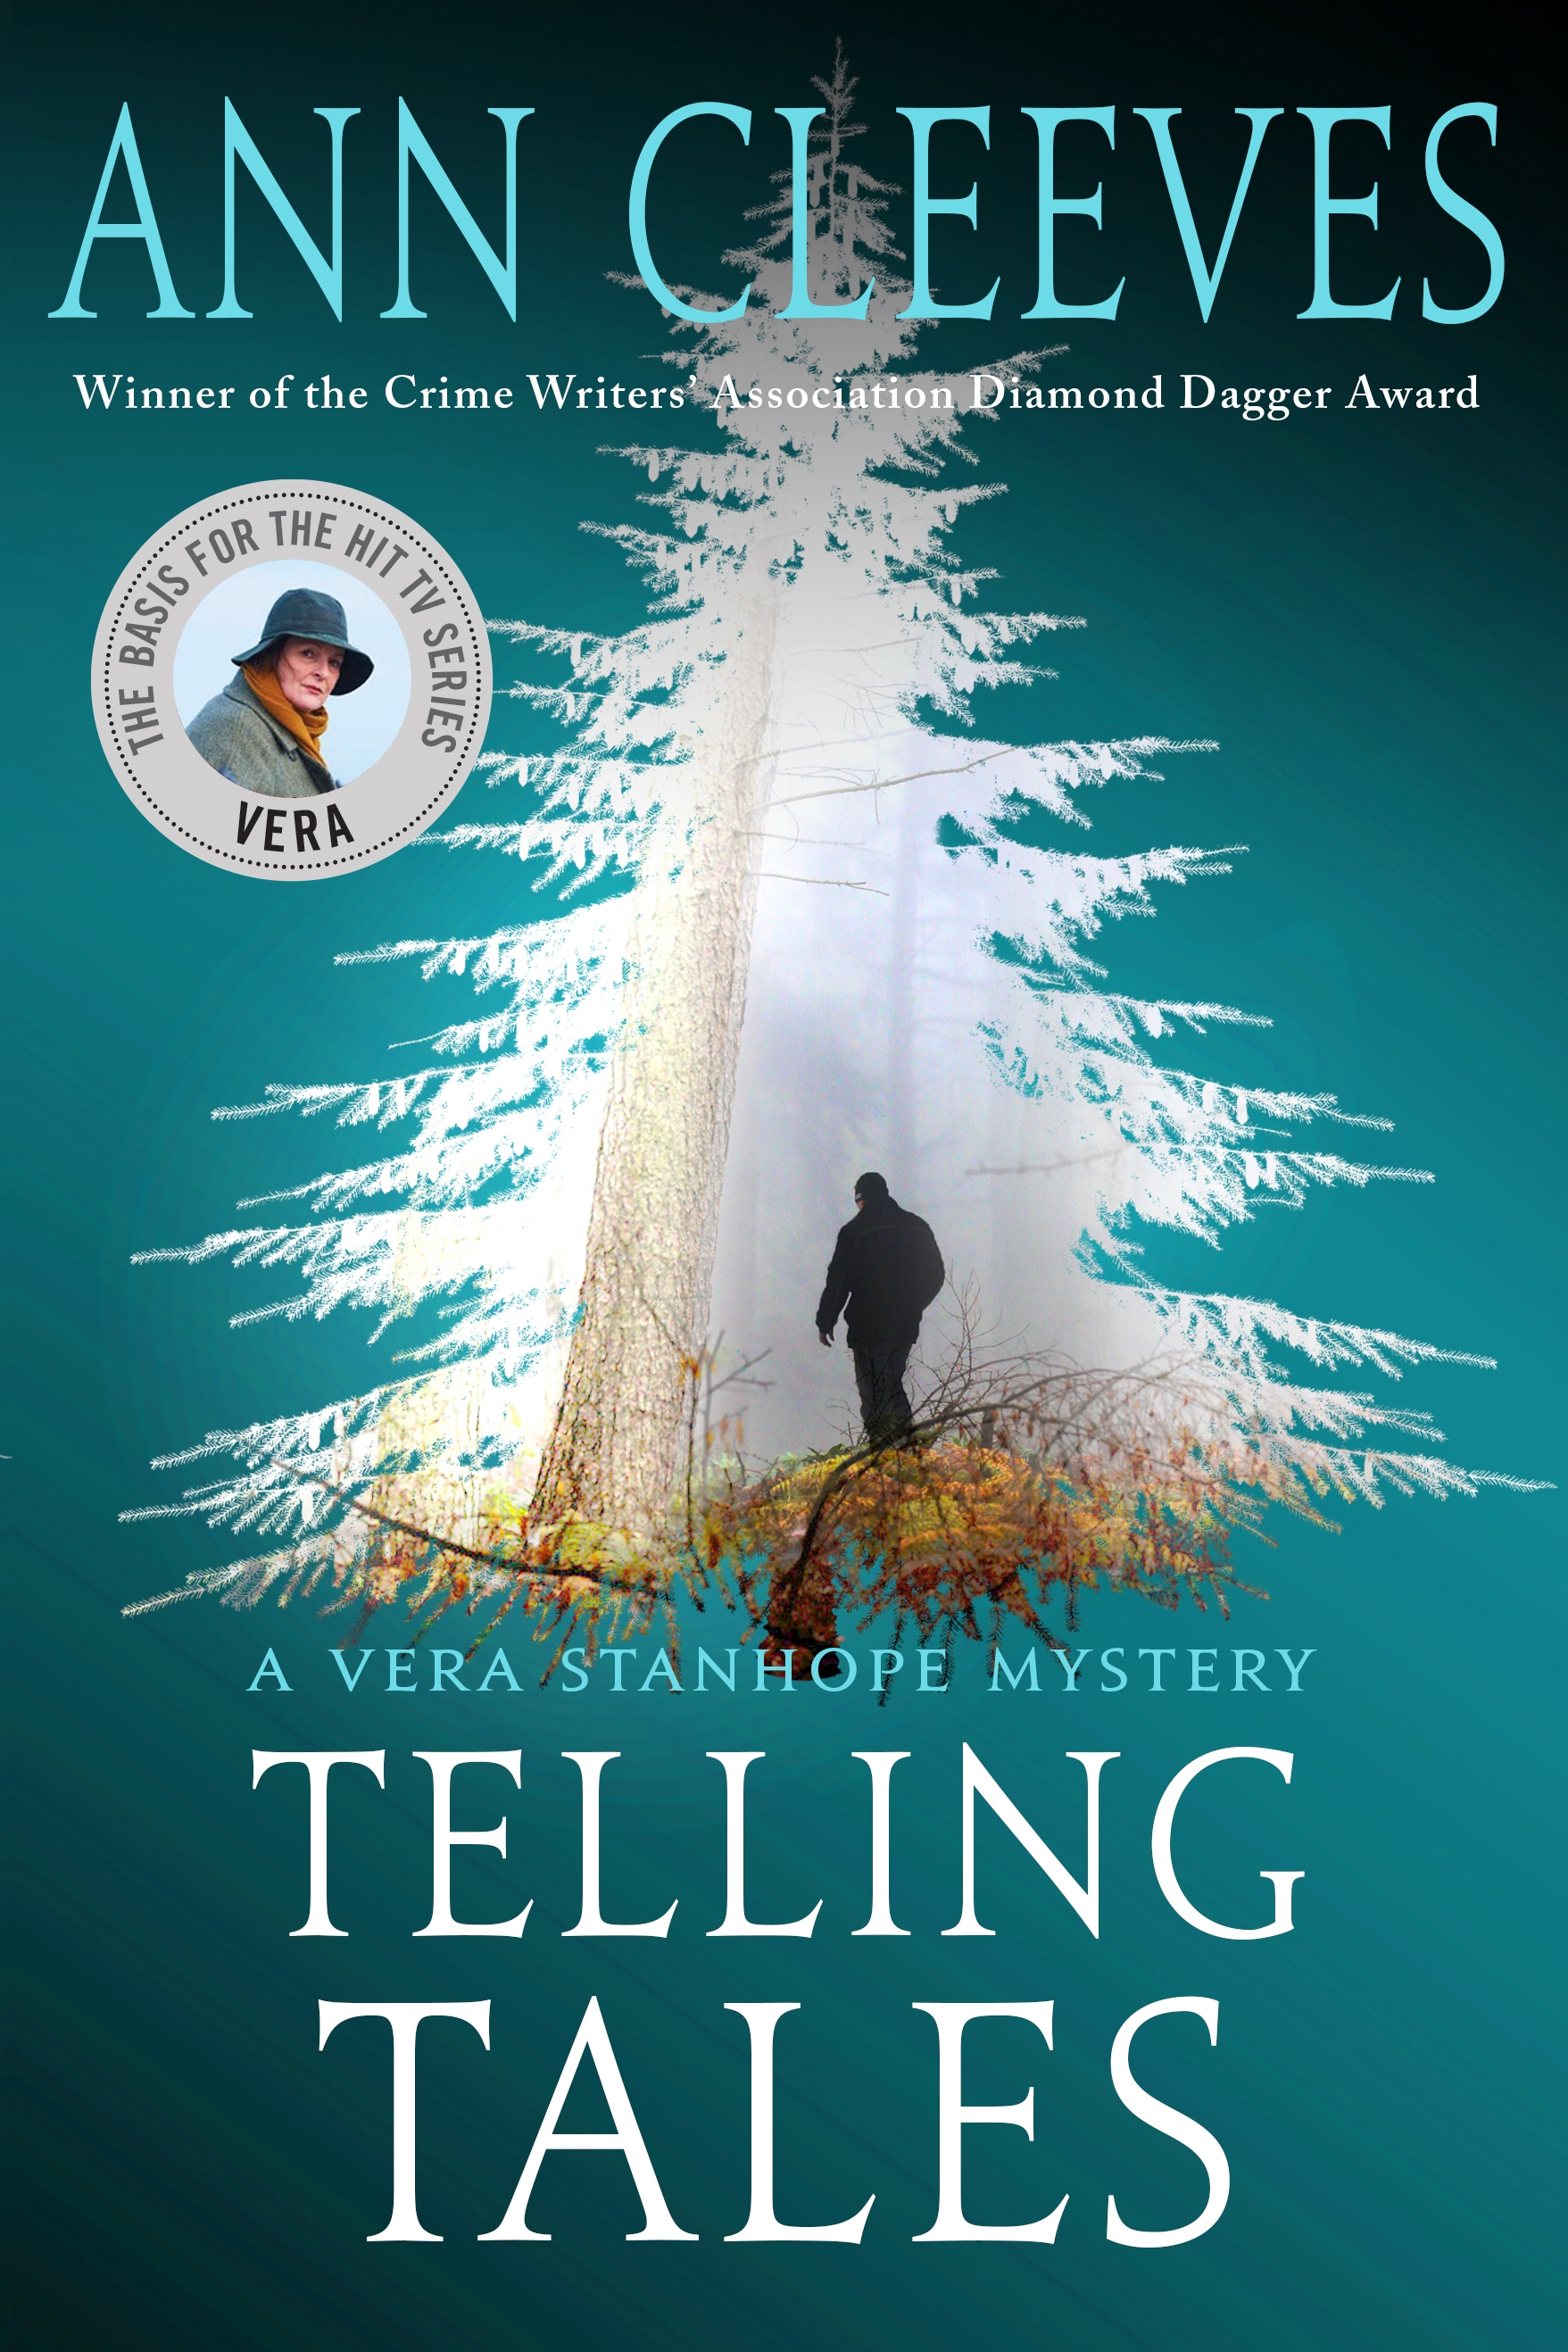 Telling Tales [electronic resource] : A Vera Stanhope Mystery